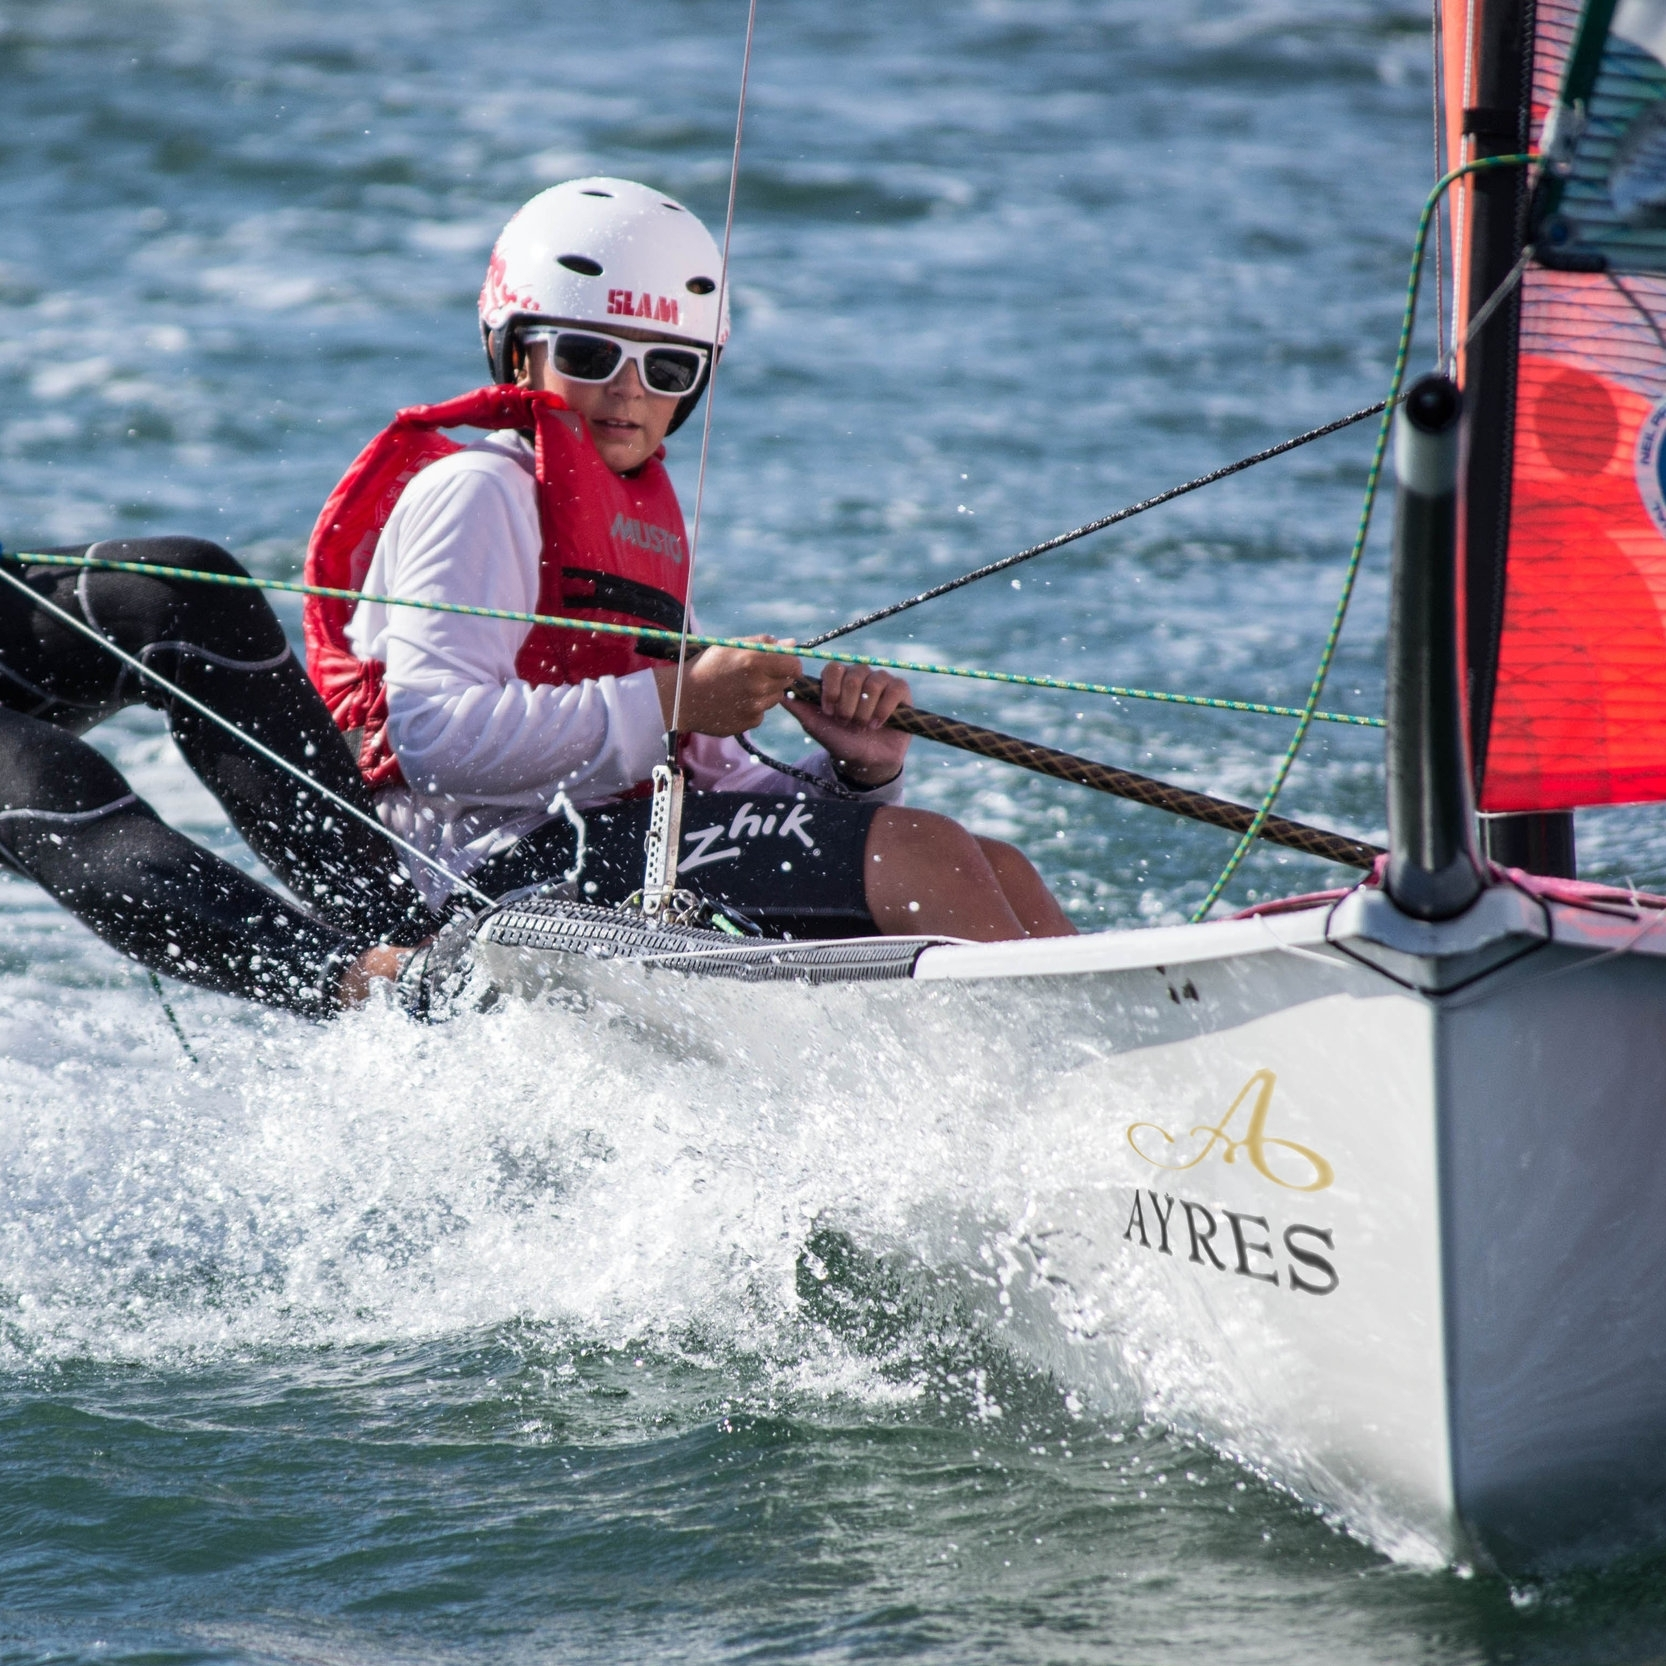 young peter joslin learning to sail the 29er